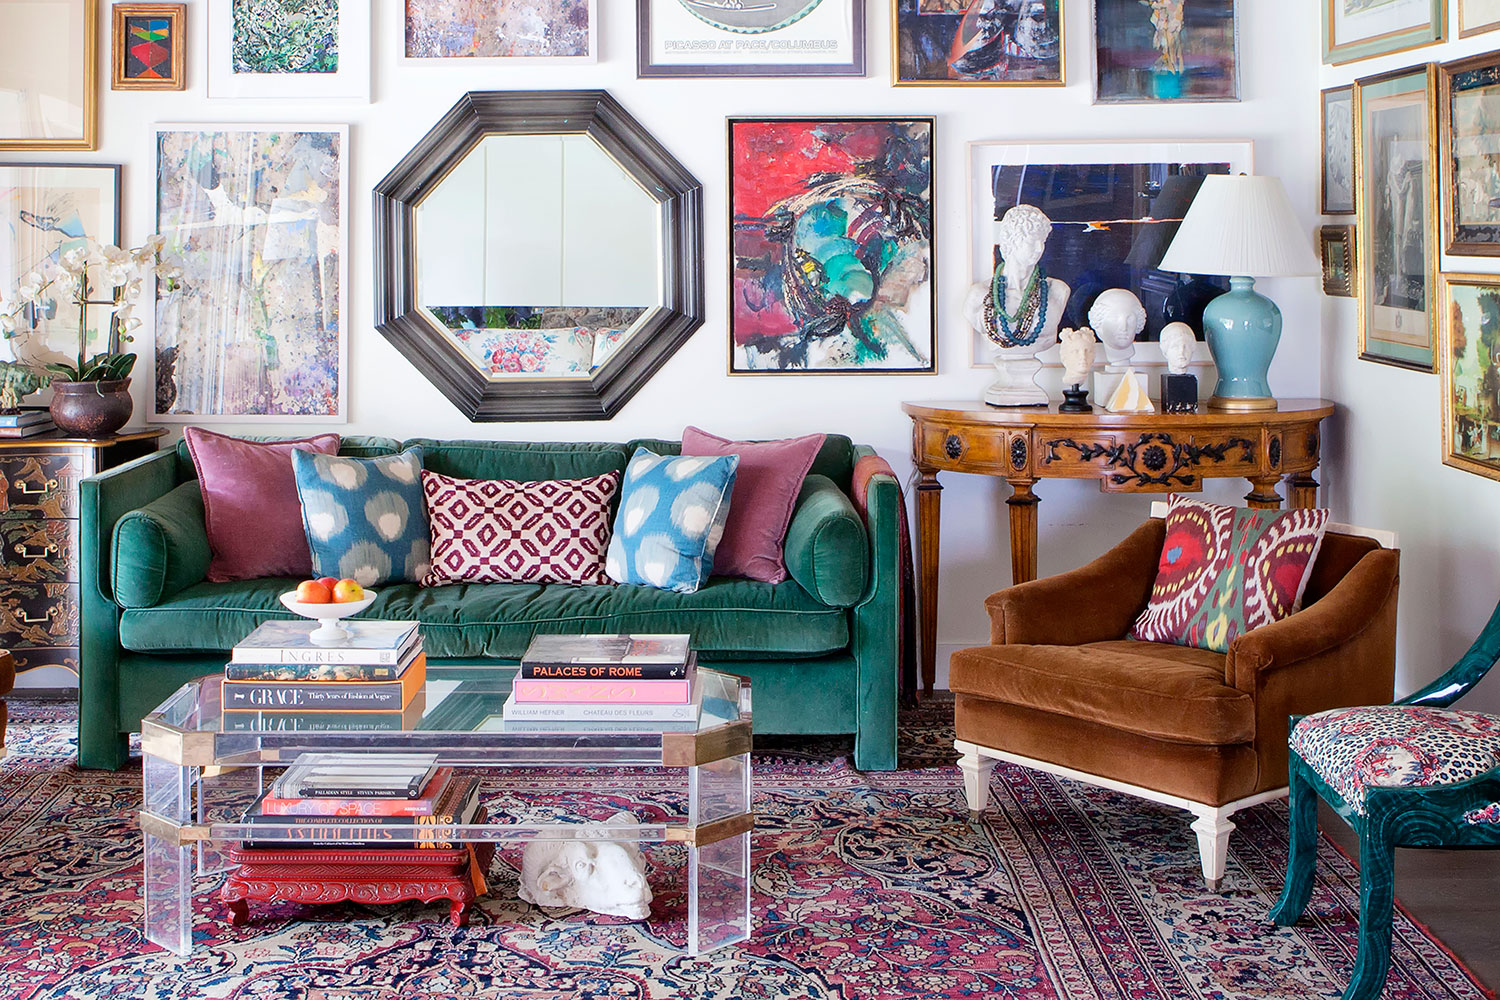 Living Room Decor Trends To Follow In 2018